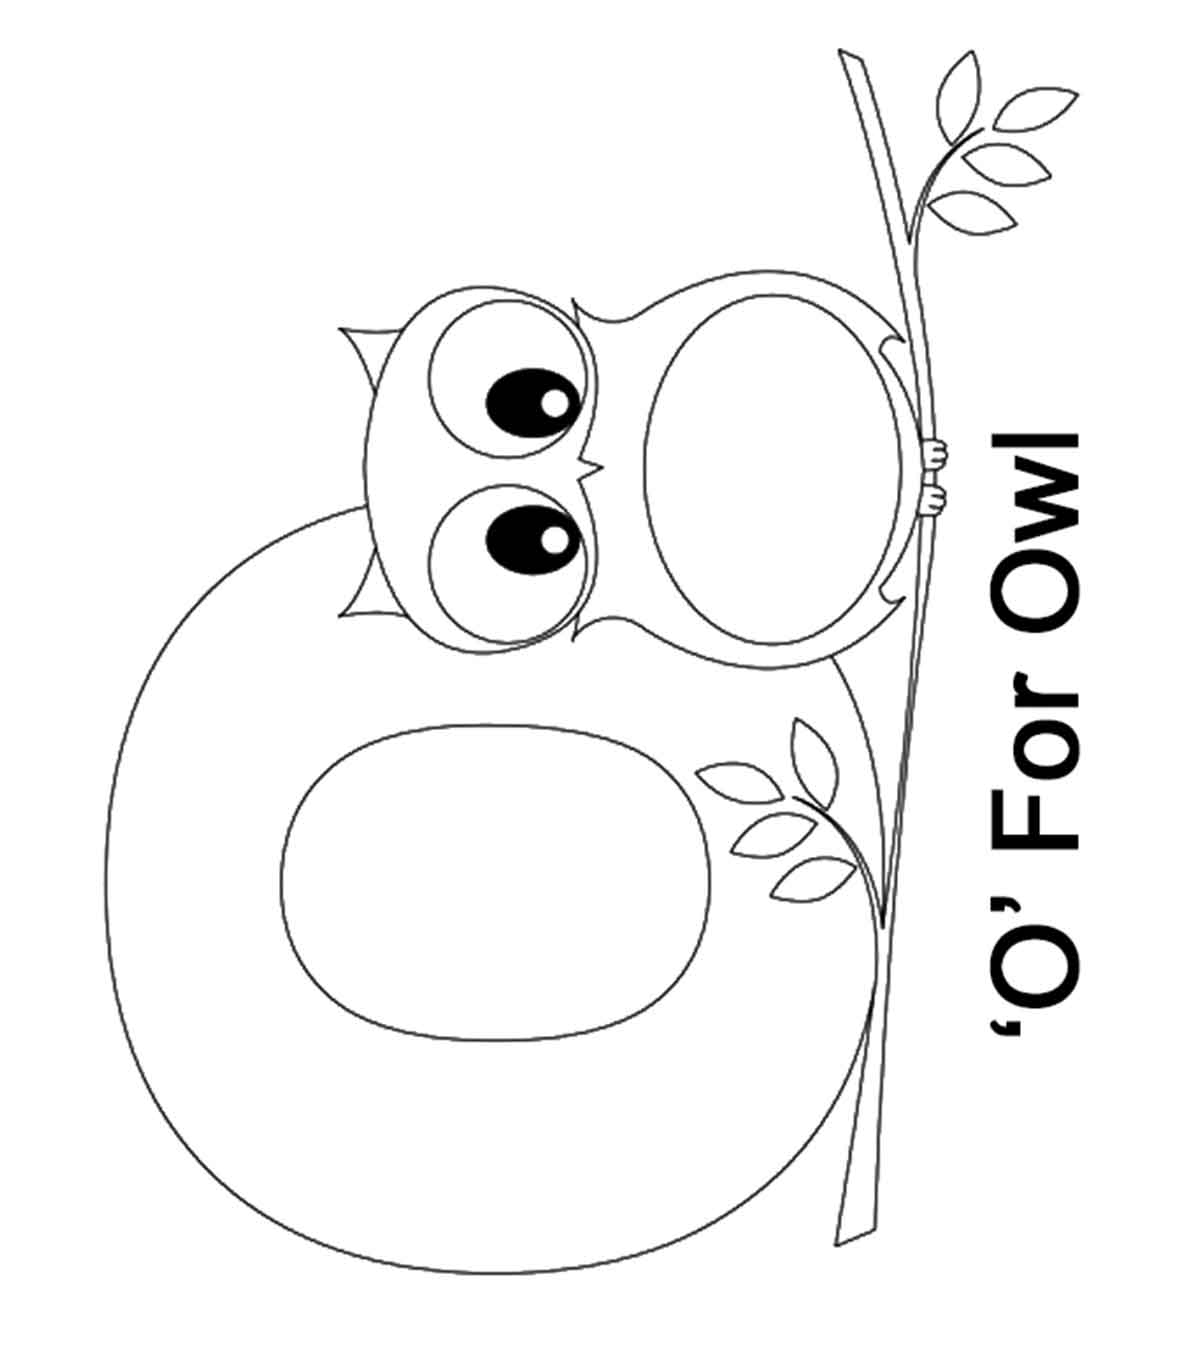 Top 10 Letter \'O\' Coloring Pages Your Toddler Will Love To ...